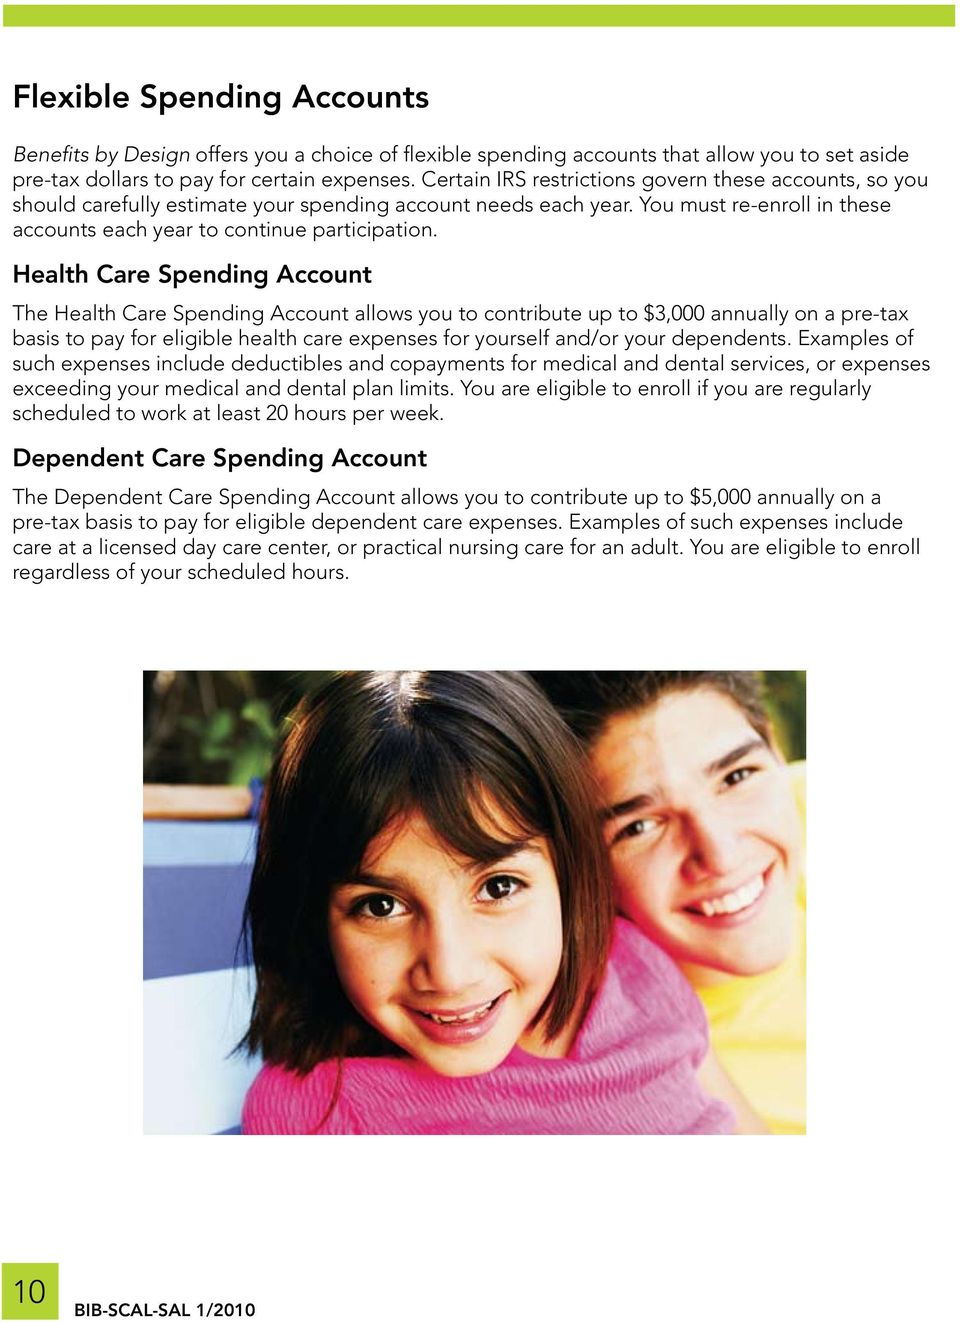 Health Care Spending Account The Health Care Spending Account allows you to contribute up to $3,000 annually on a pre-tax basis to pay for eligible health care expenses for yourself and/or your